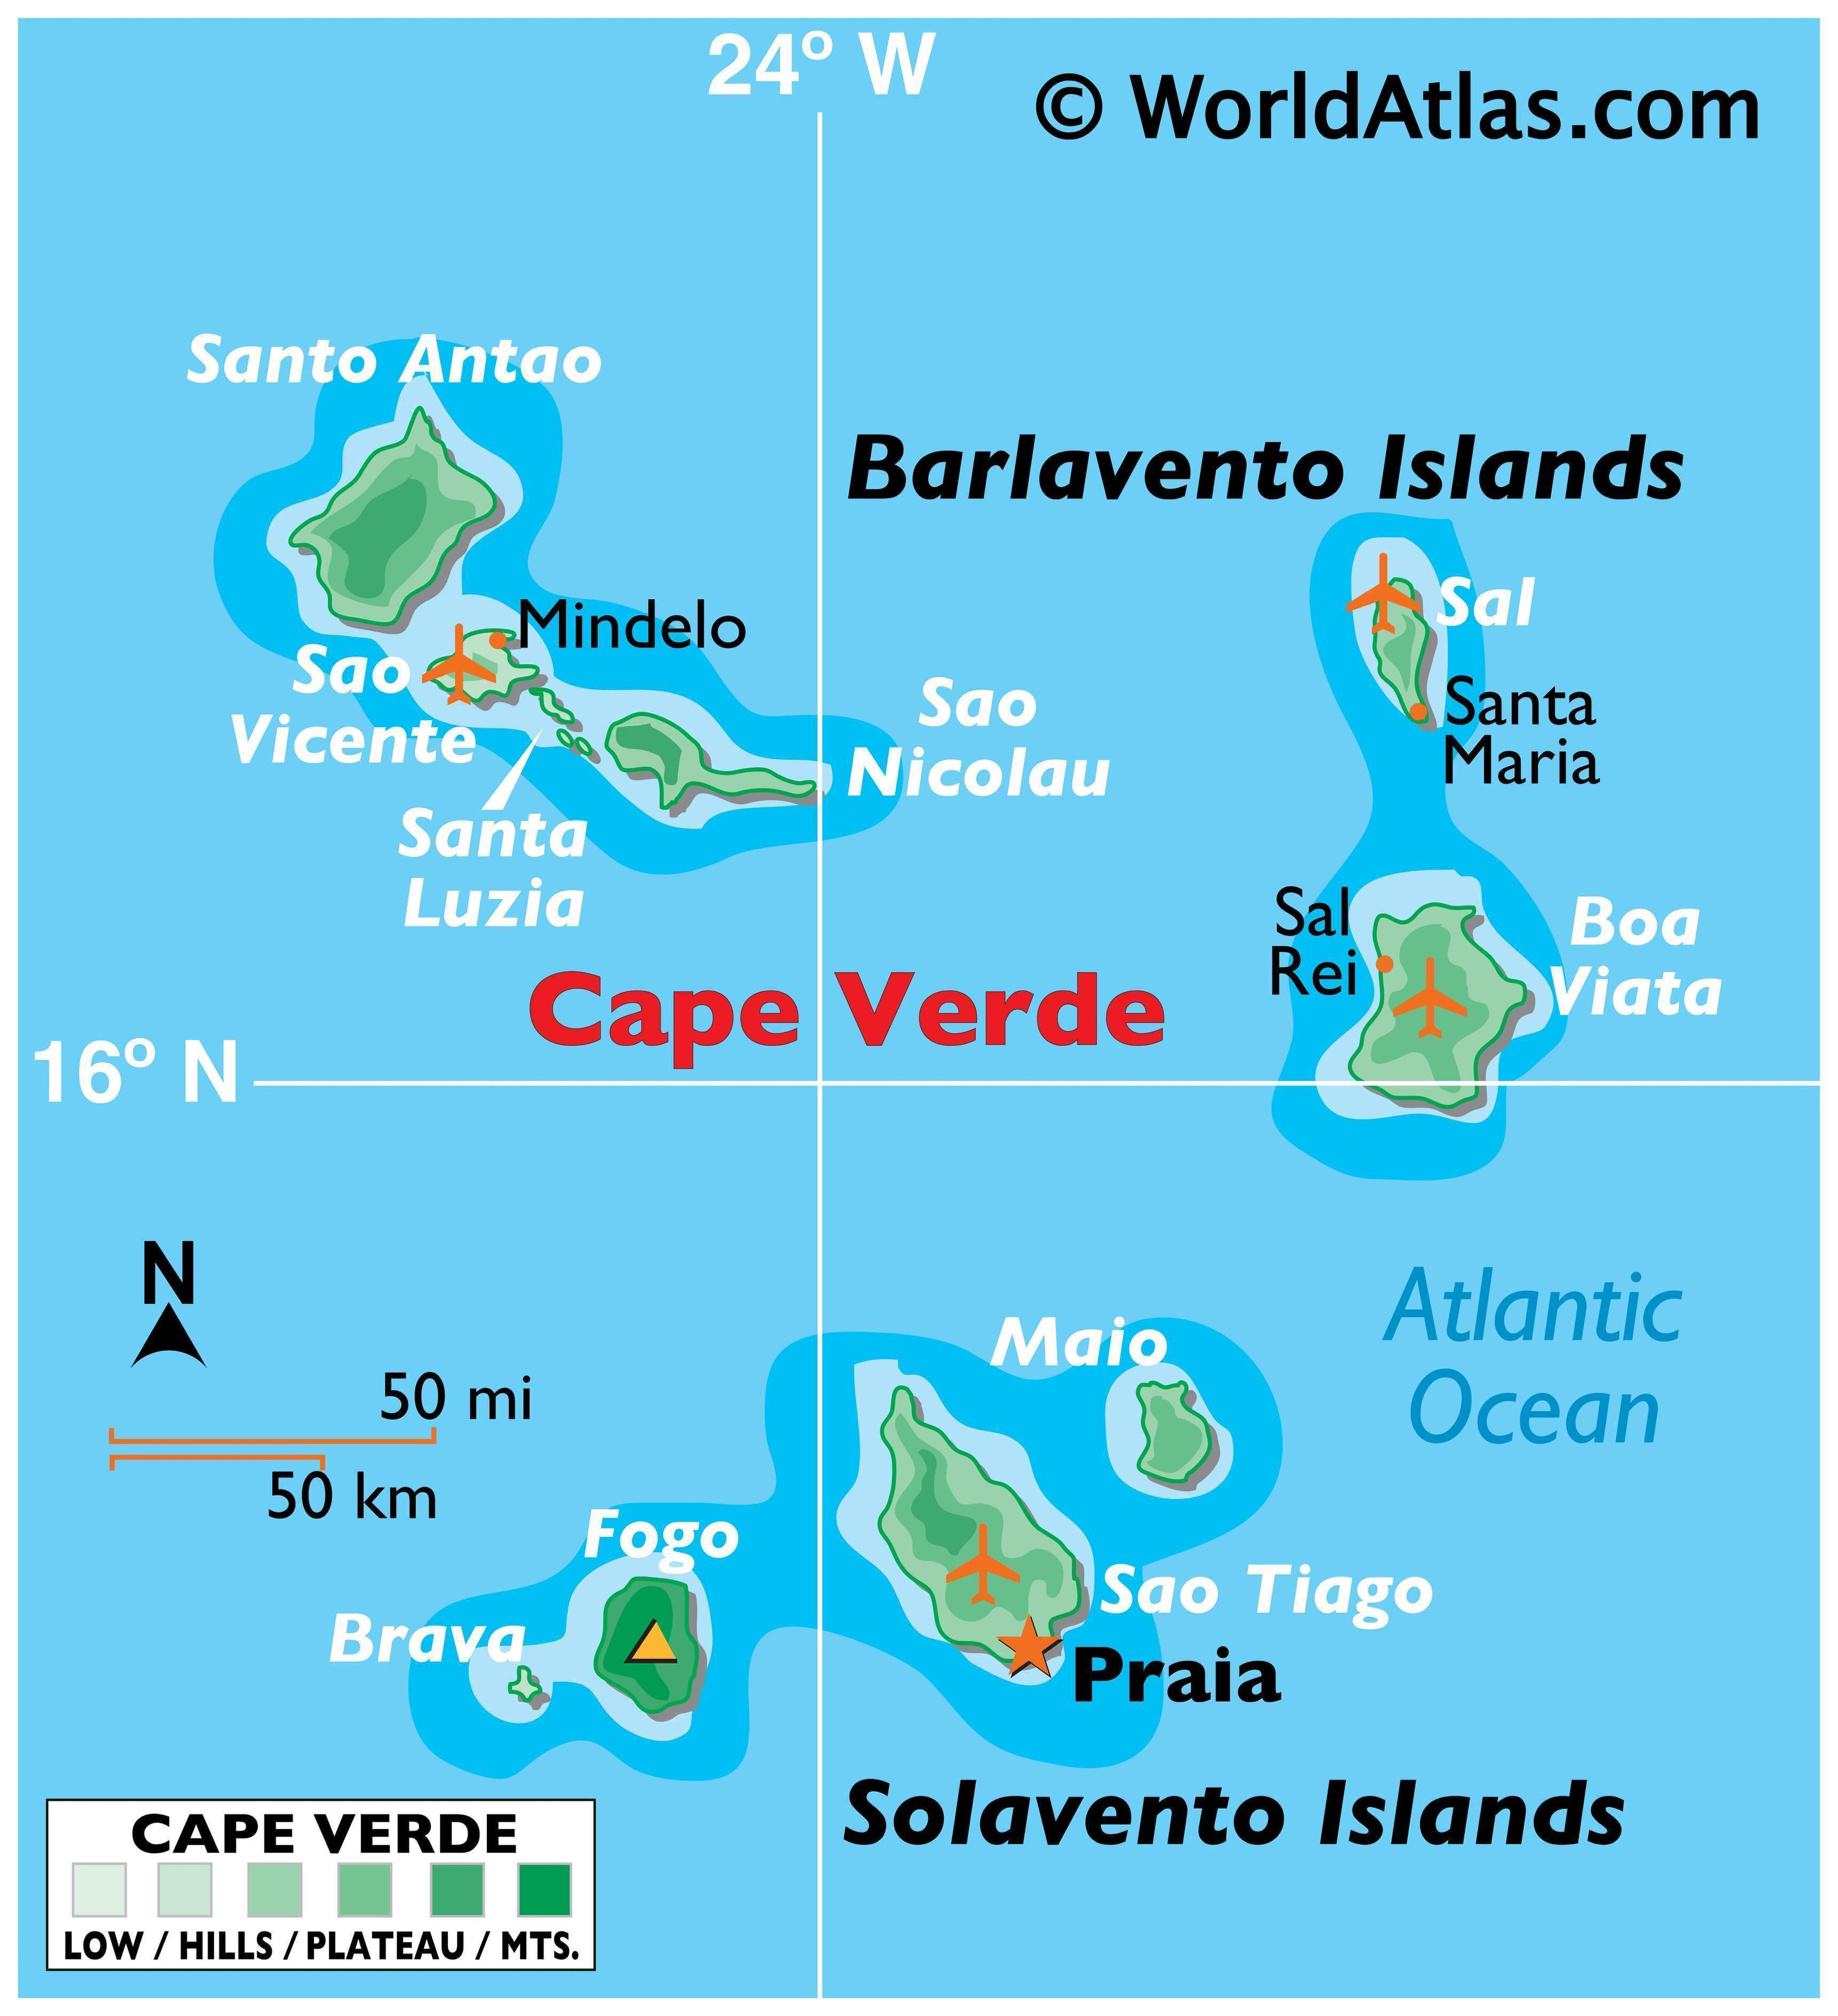 Physical Map of Cape Verde showing major islands, highest point, terrain, major settlements, and more.